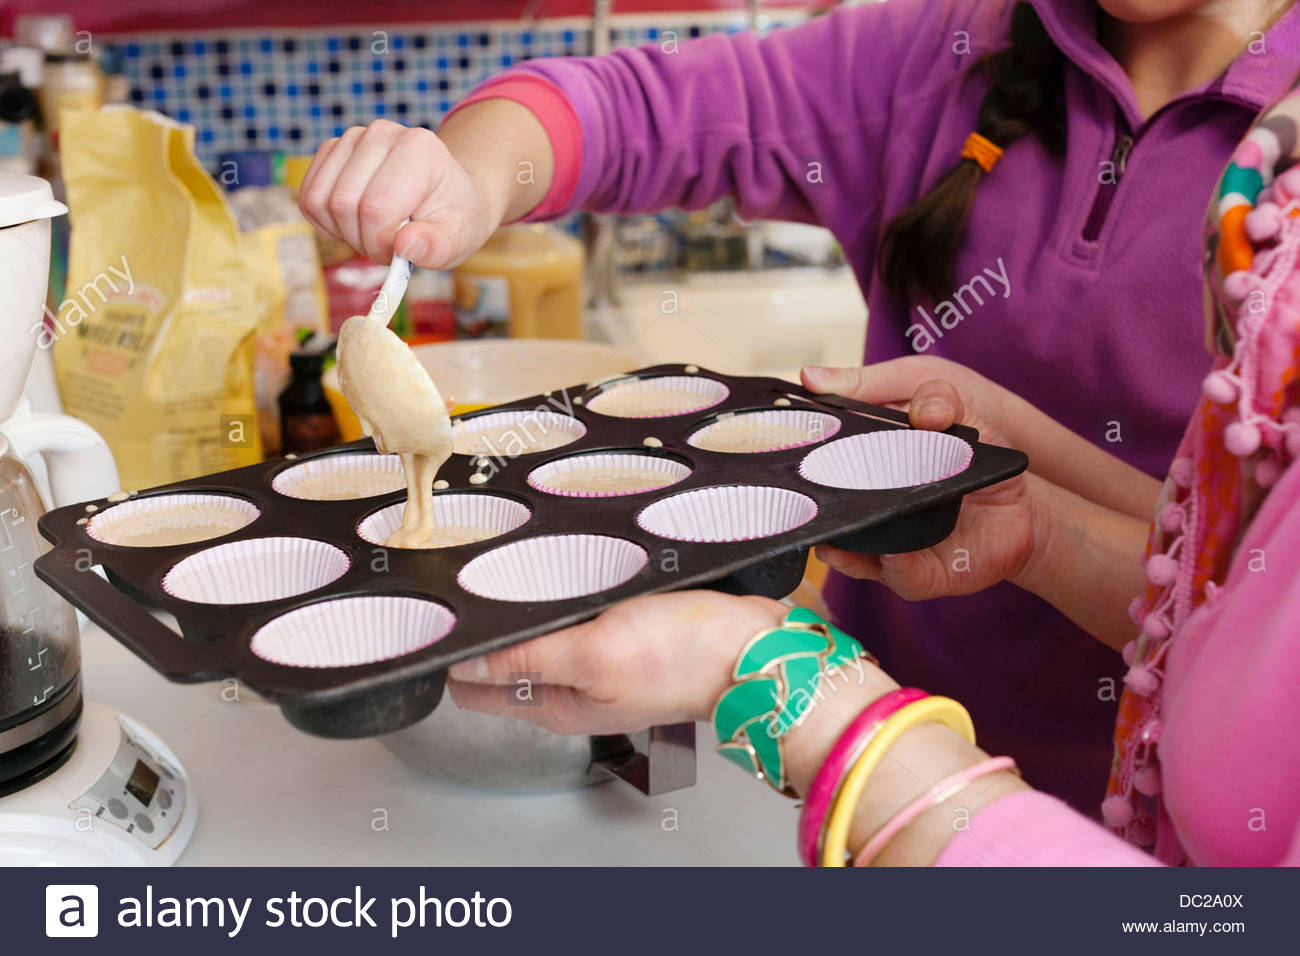 Mother and daughter making cupcakes - Stock Image